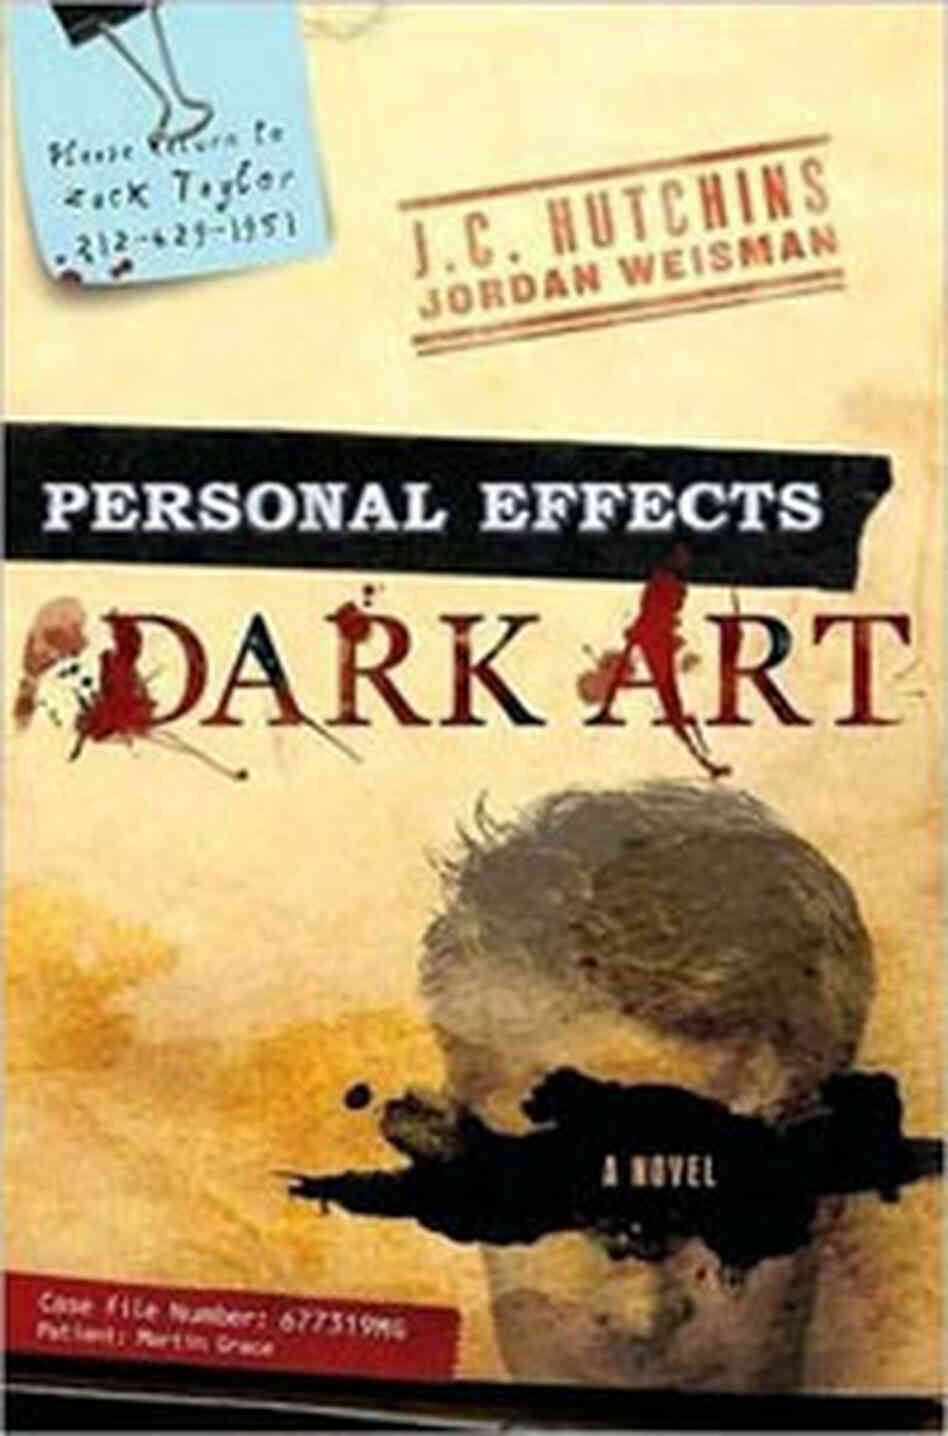 'Personal Effects: Dark Art'